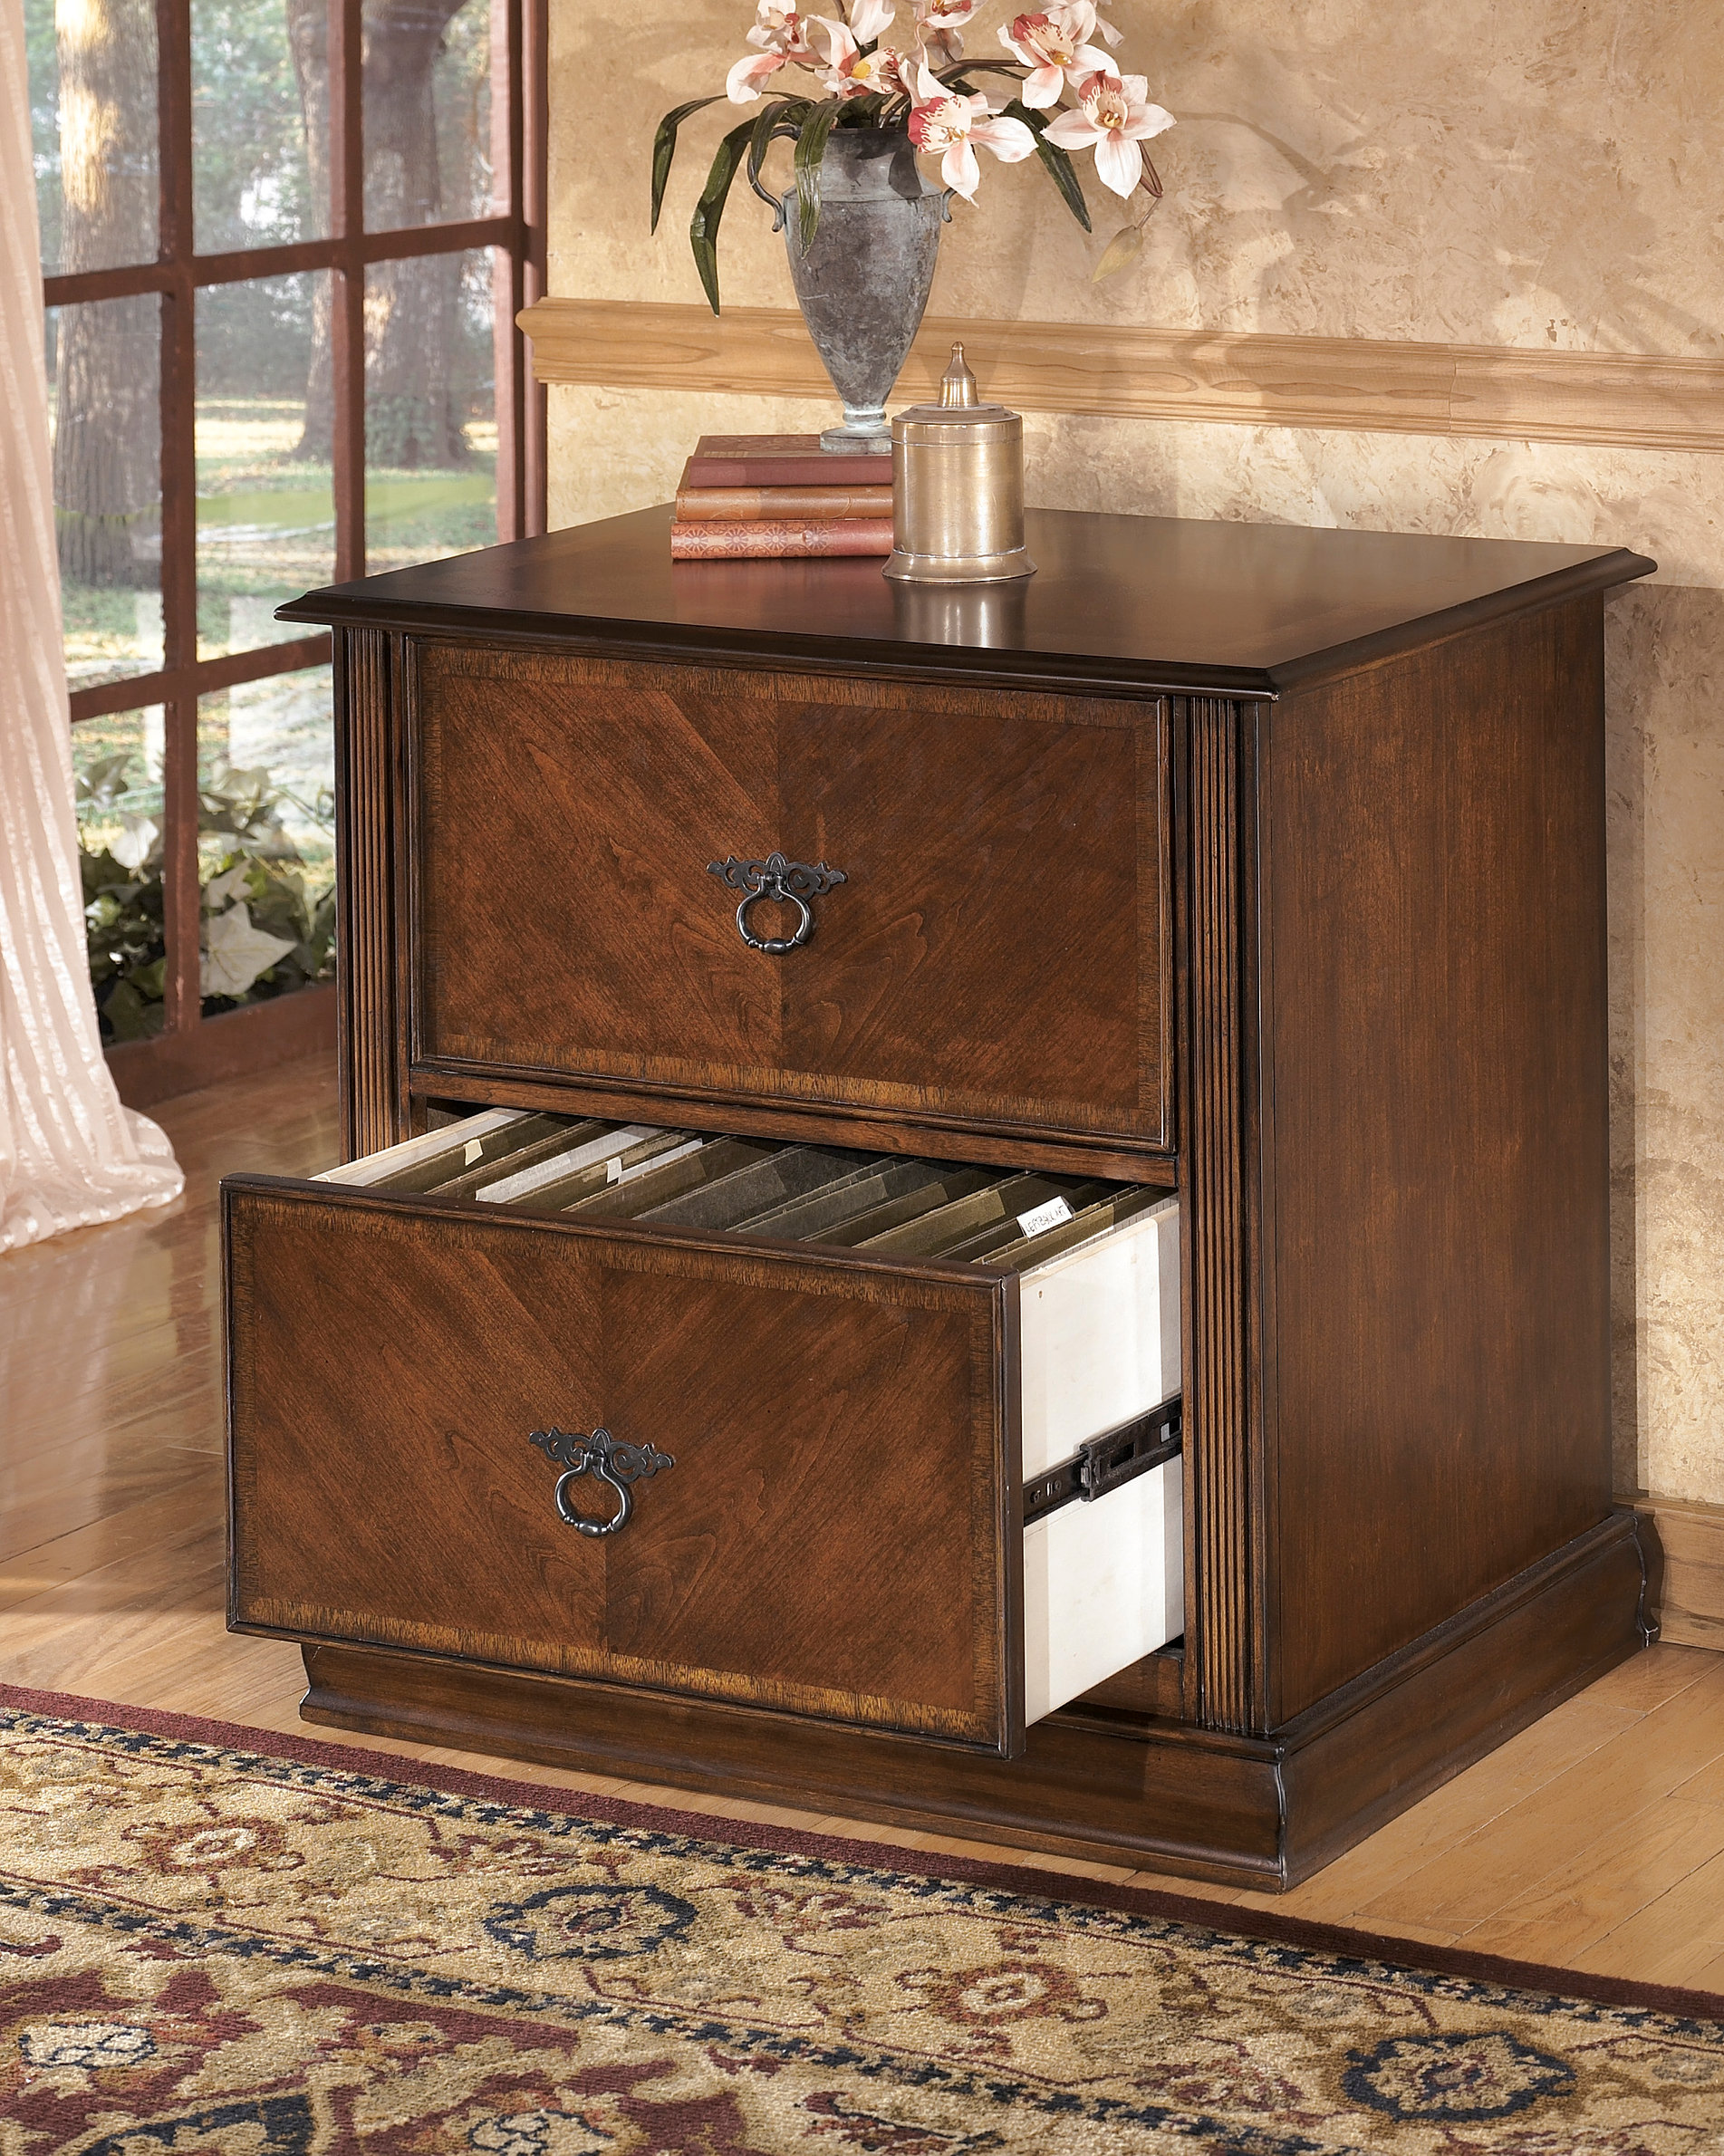 Tv Cabinet Ashley Furniture Antique Wine Cabinet Images Wind River Collection Amazing Tv